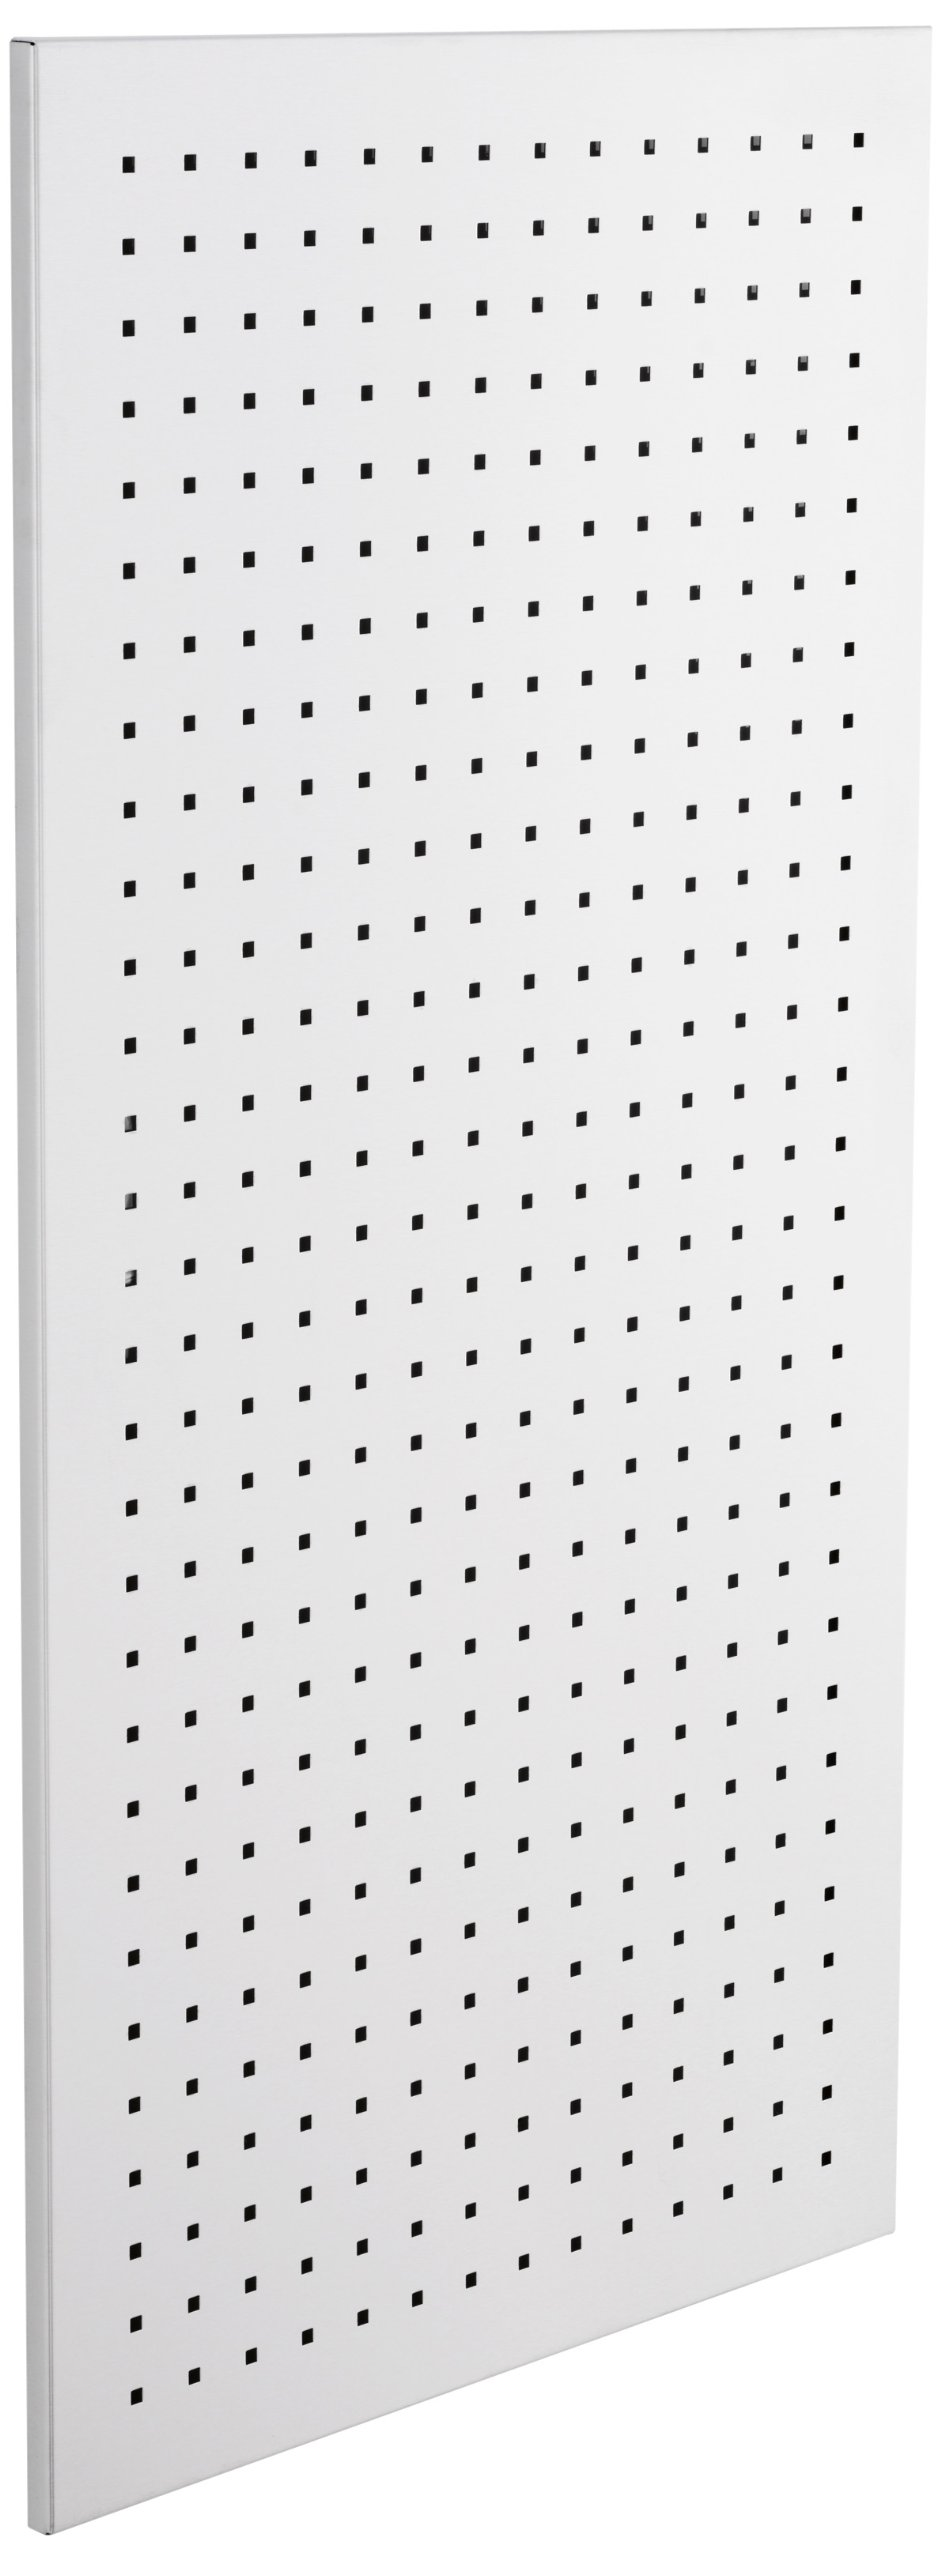 Blomus Magnet Board, Perforated, 40 x 80 cm